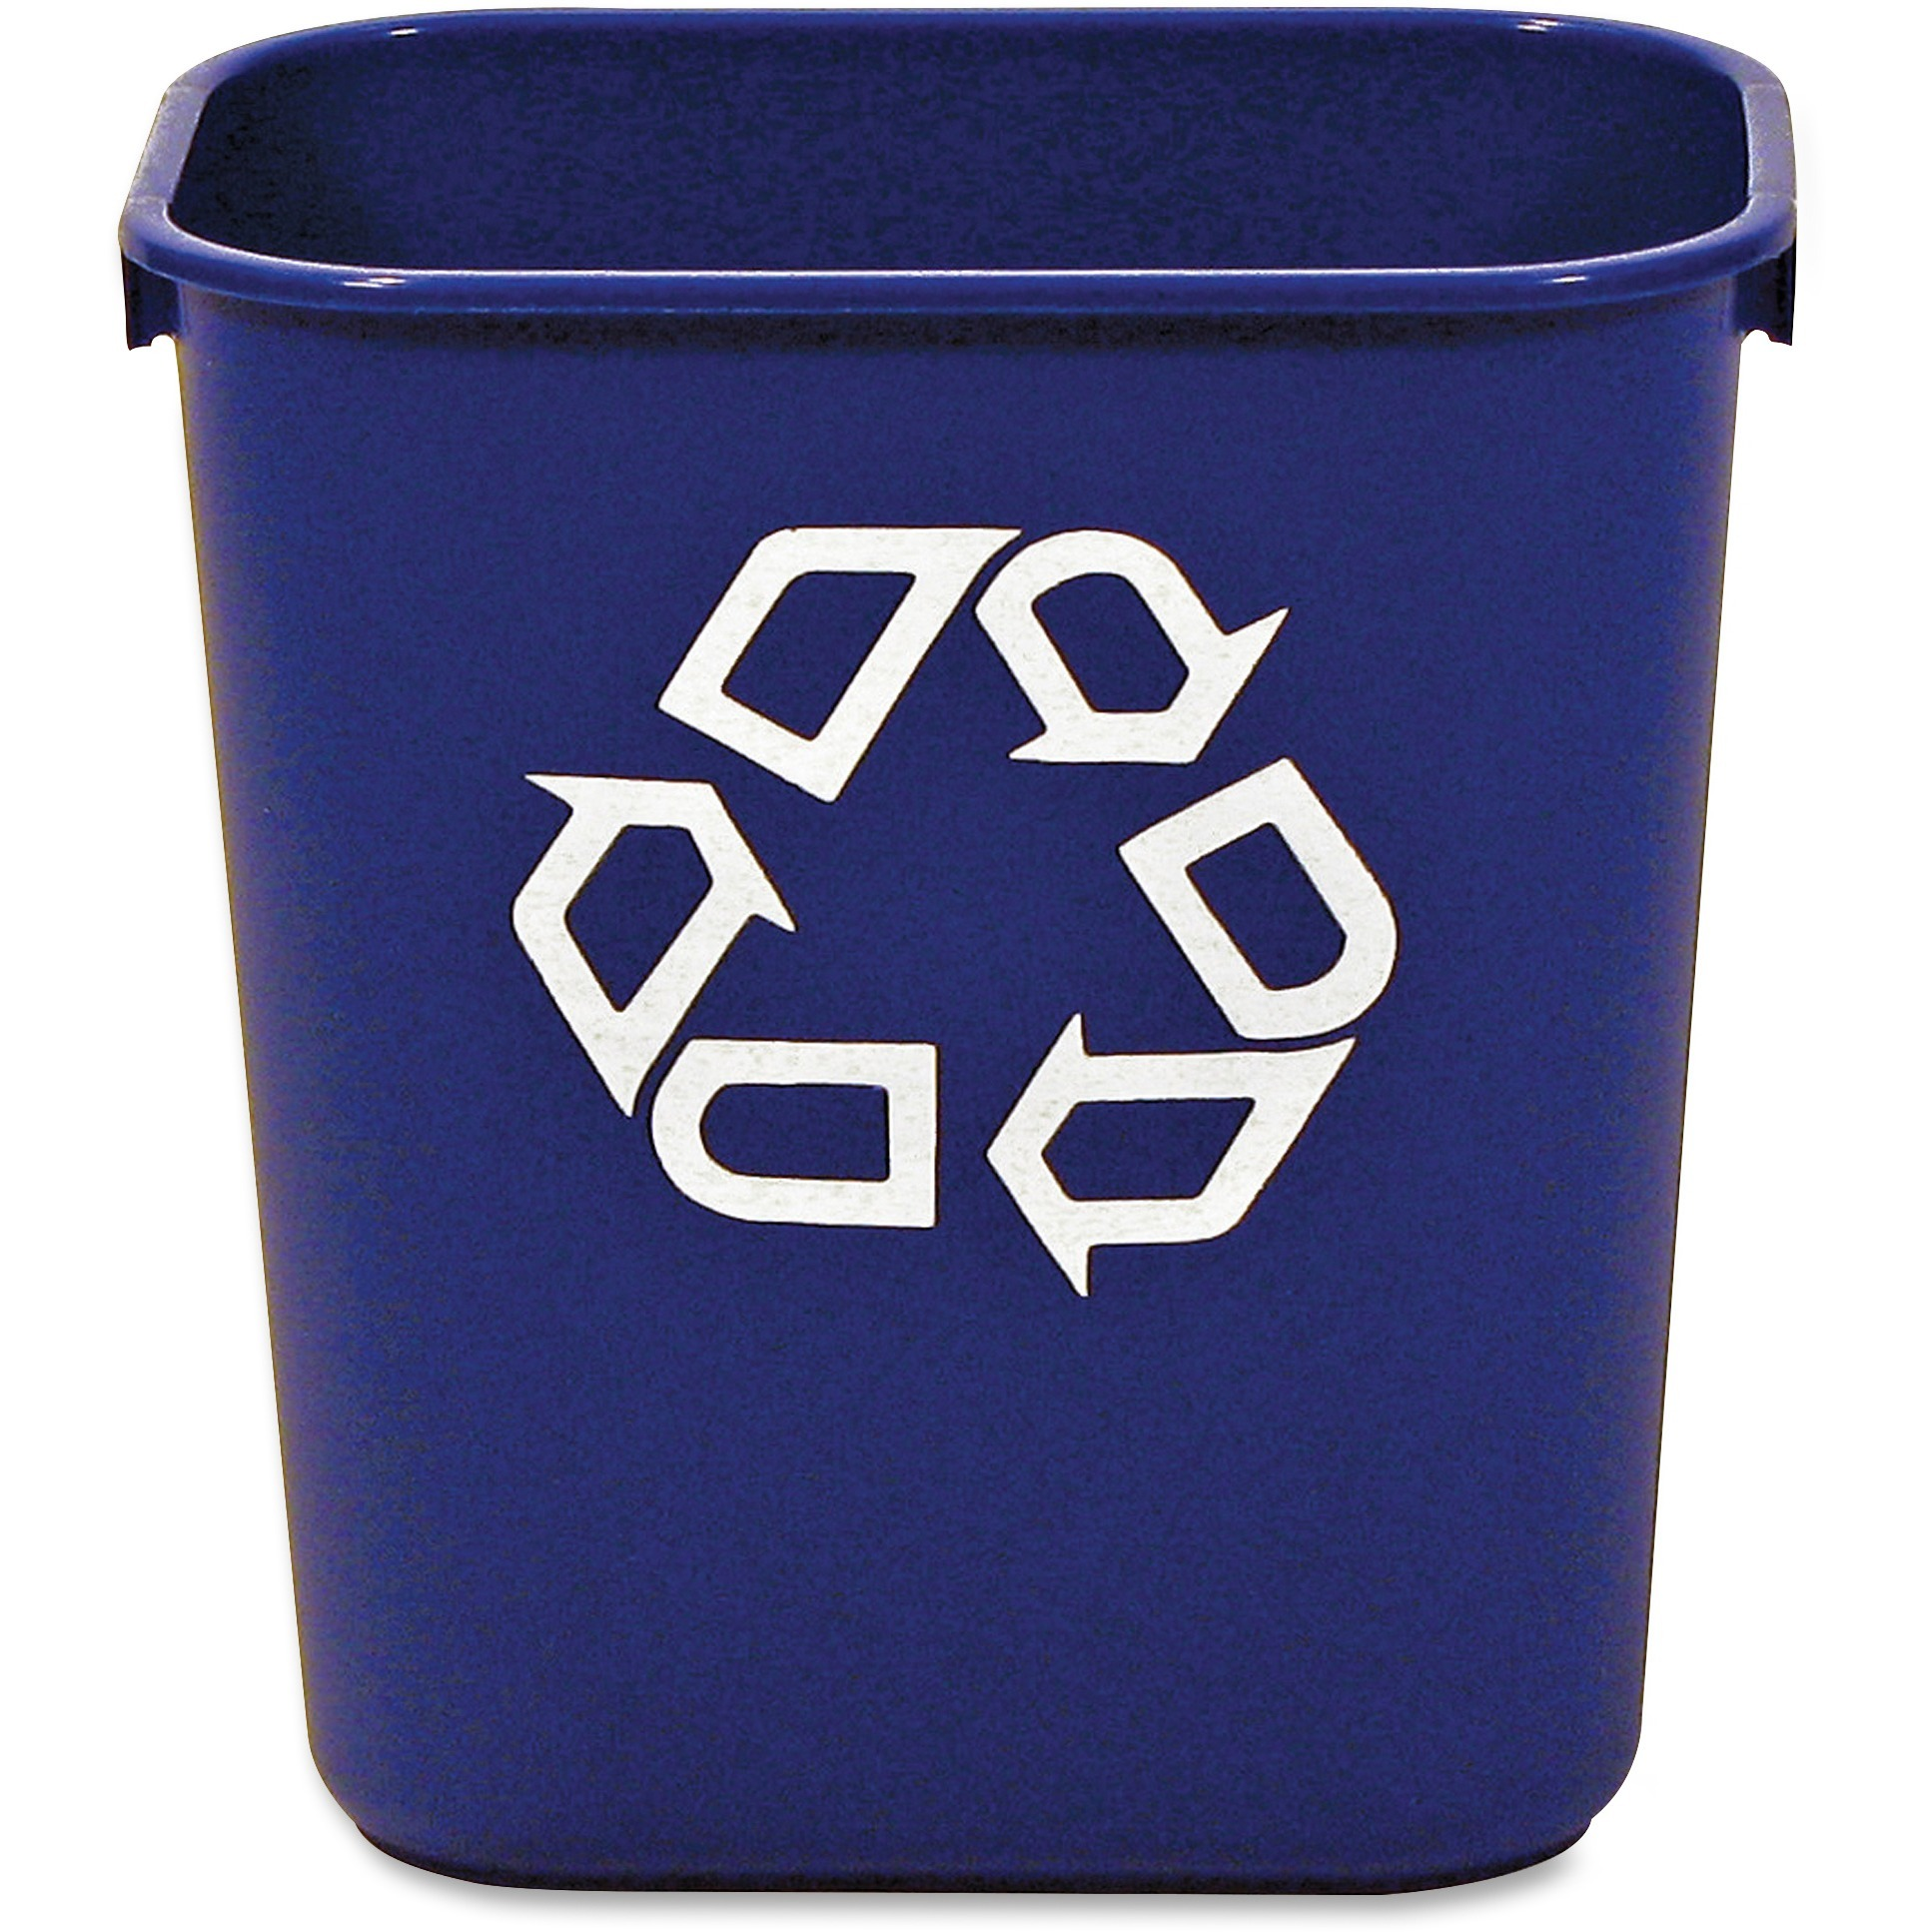 Rubbermaid Blue Deskside Recycling Container, Blue